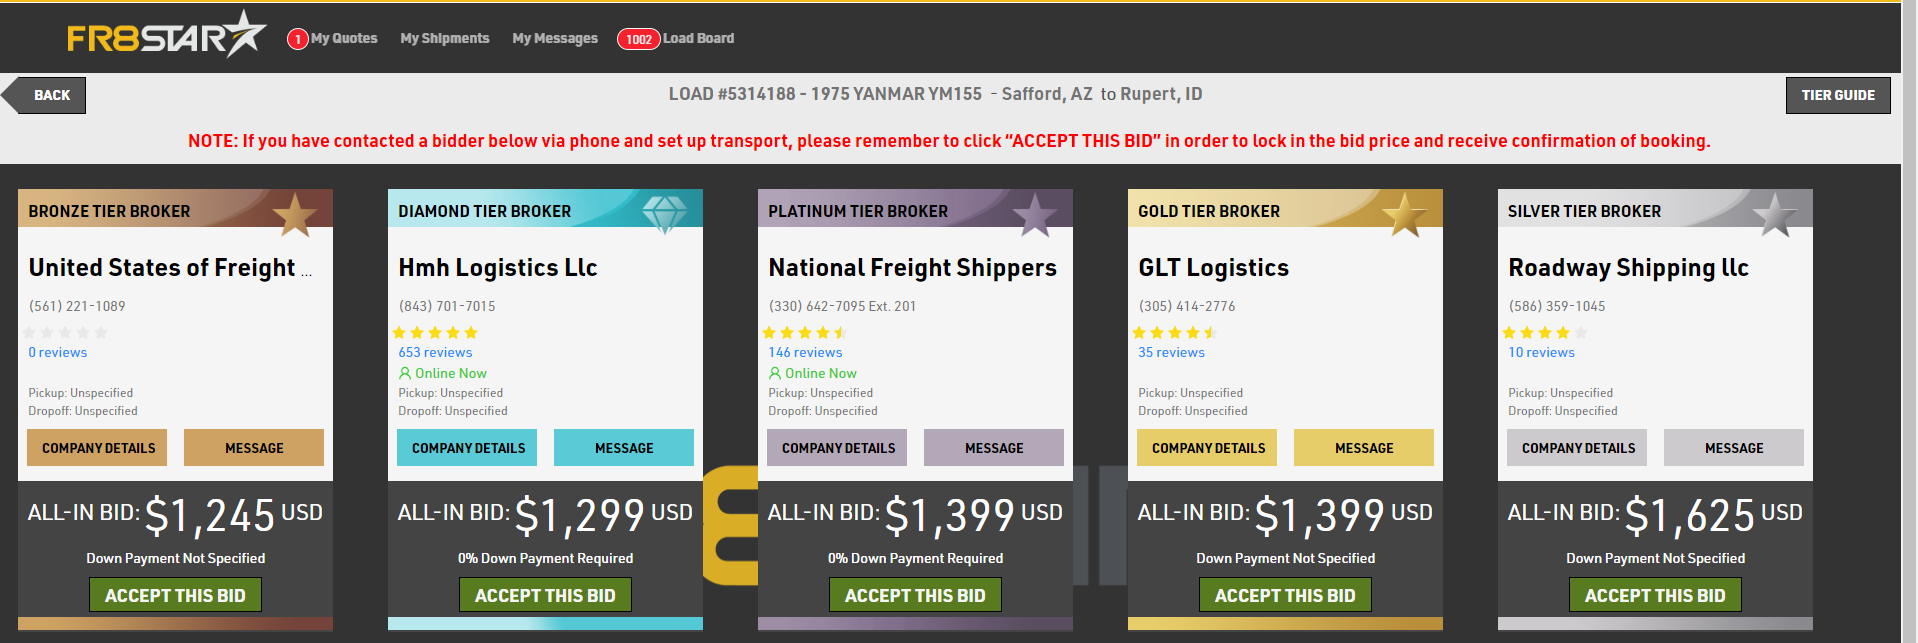 FR8Star's bid comparison makes it easy to transport your shipment